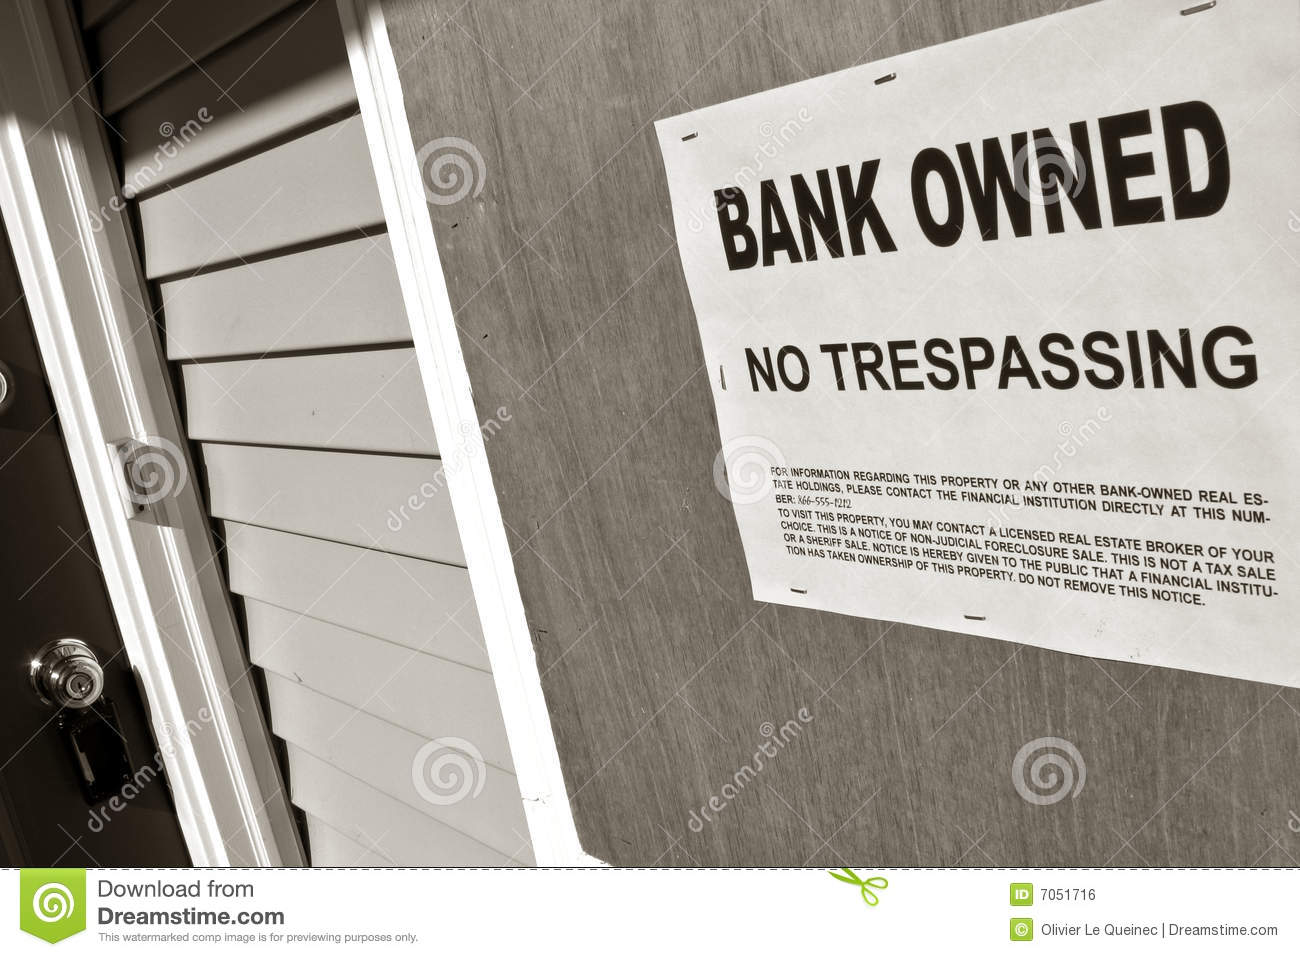 Bank estate foreclosure house owned real sign